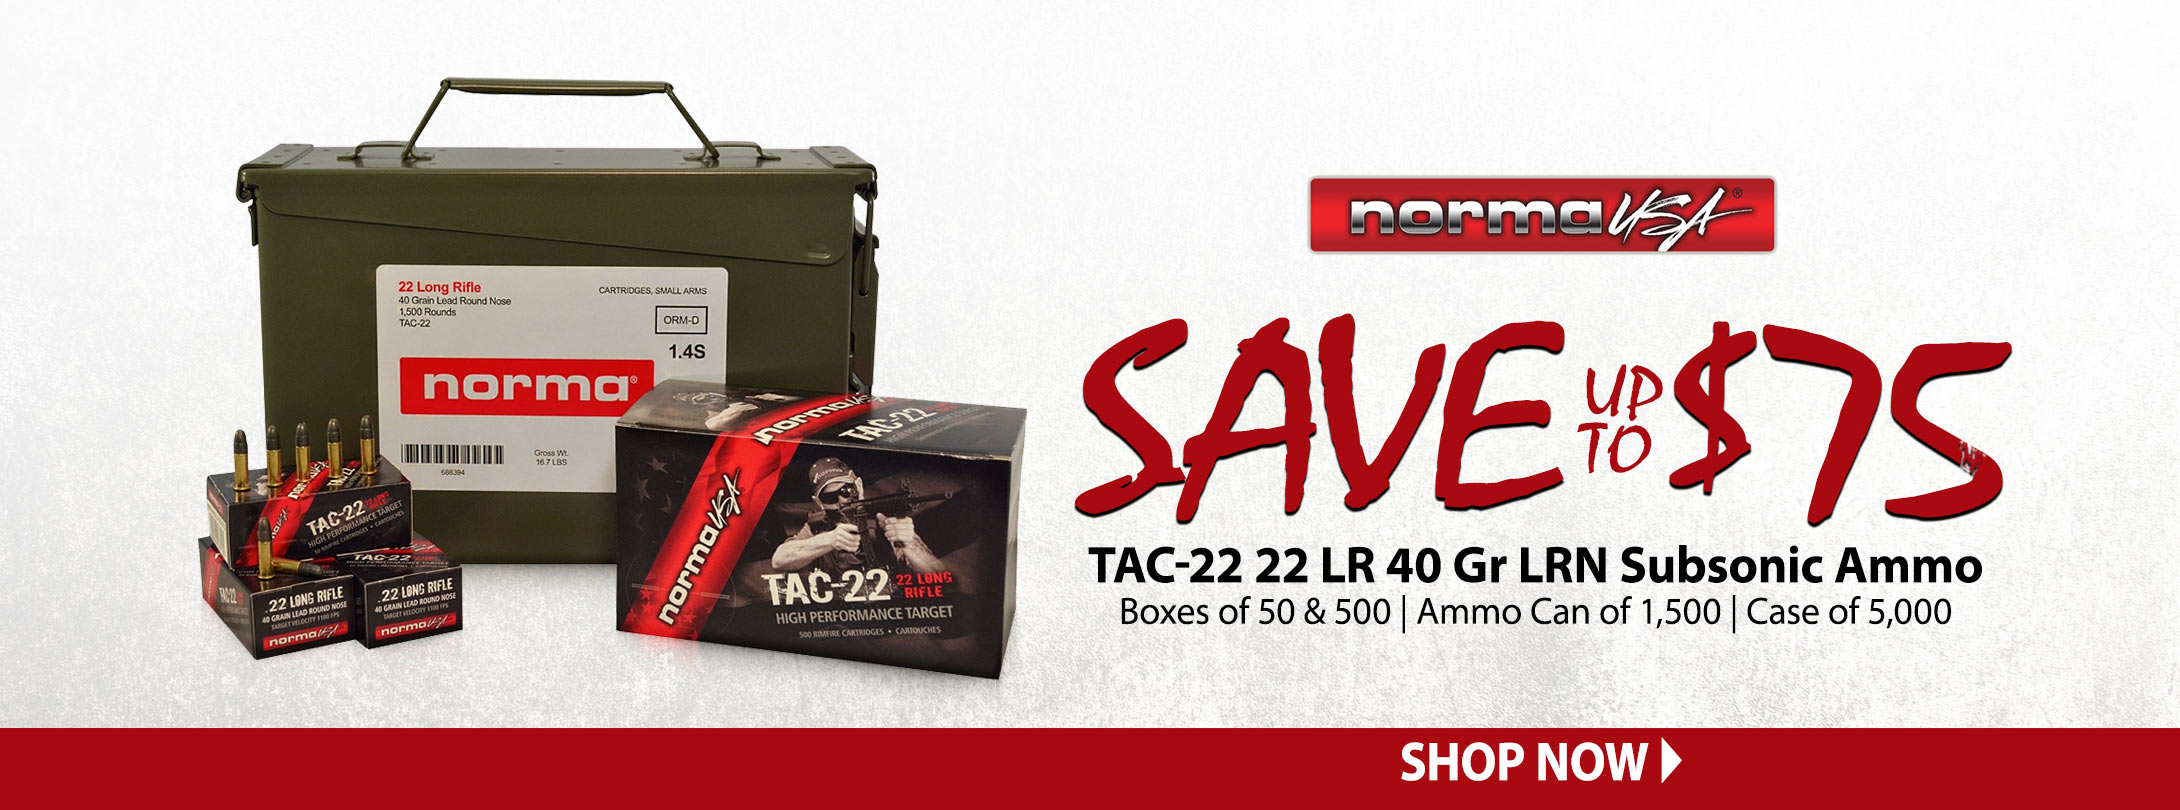 48 Hr Sale - Save Up to $75 On Norma TAC-22